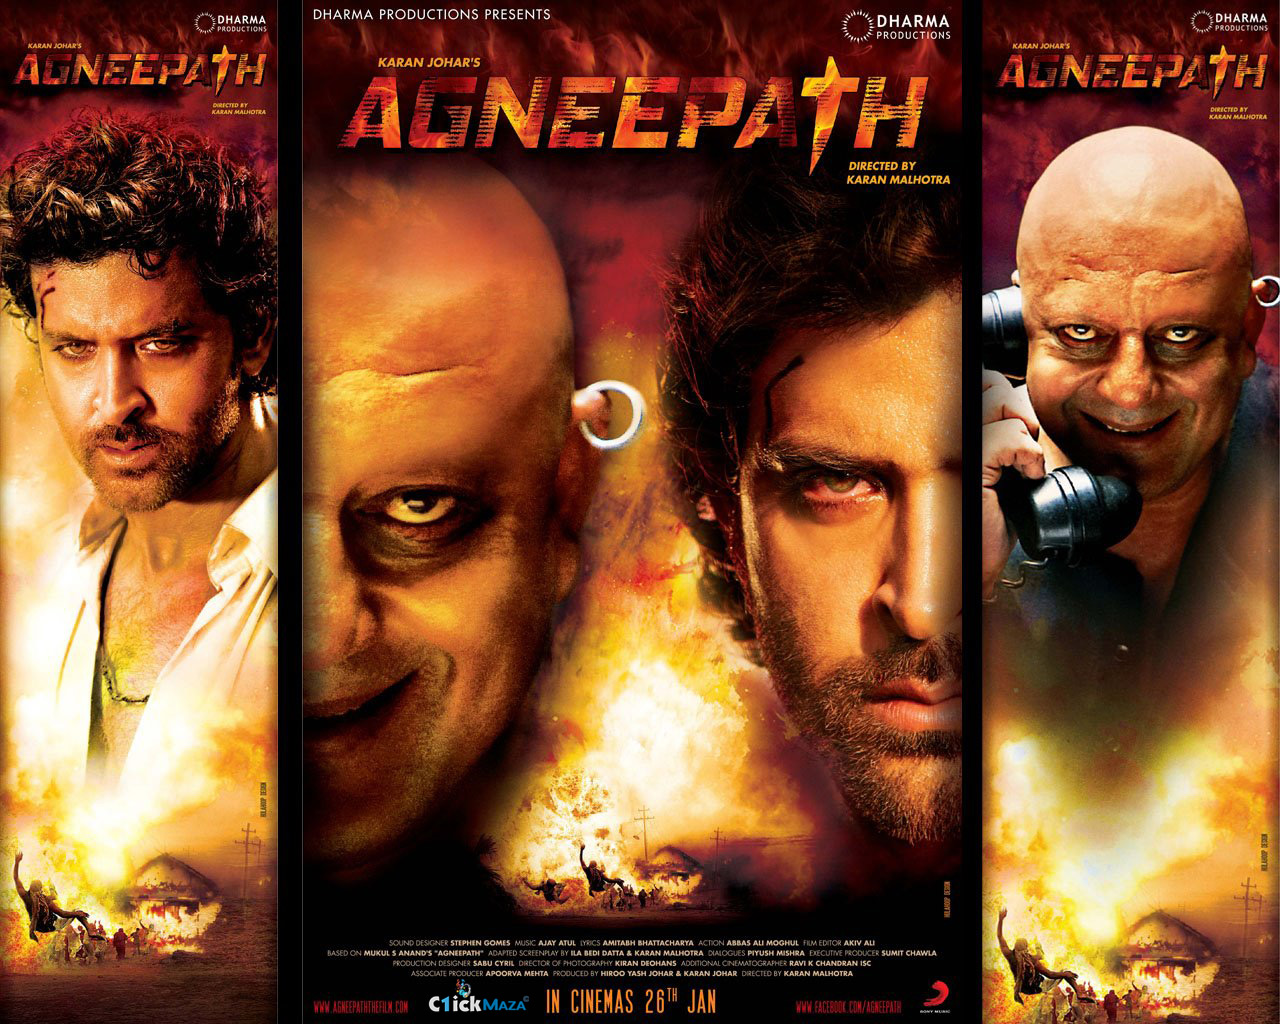 Agneepath (2012) mp3 songs | mp3 songs free download and listen online.